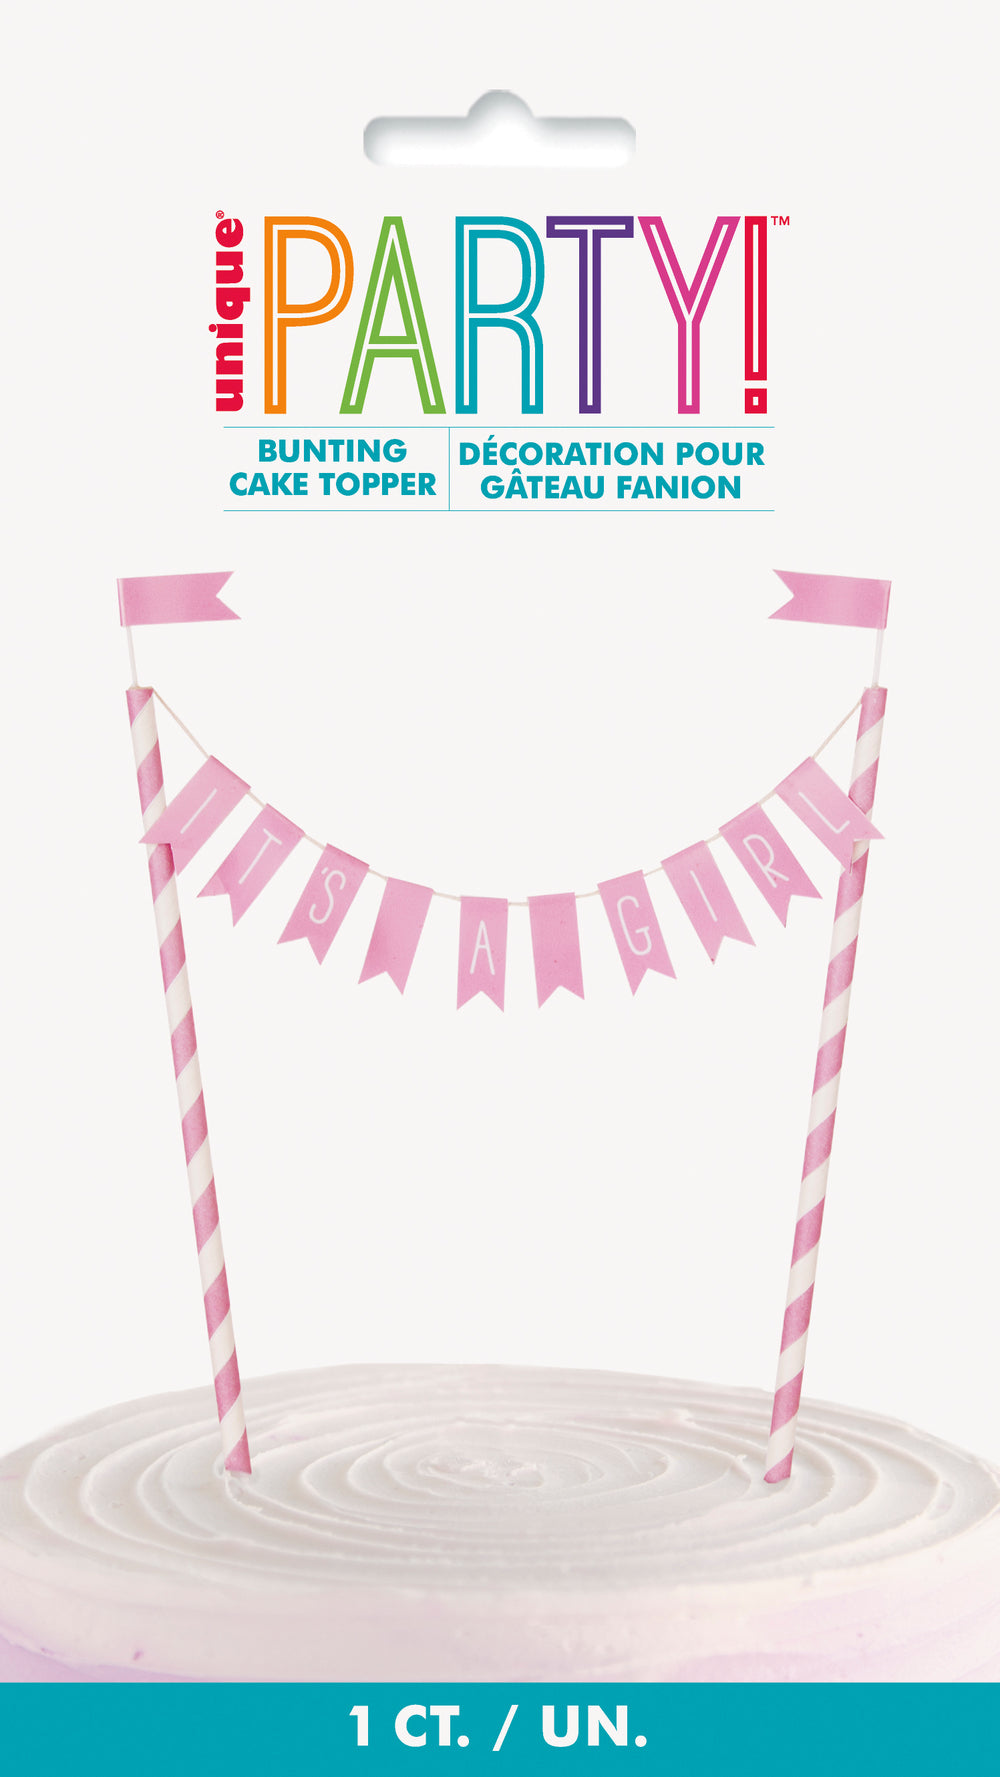 its a girl bunting cake topper